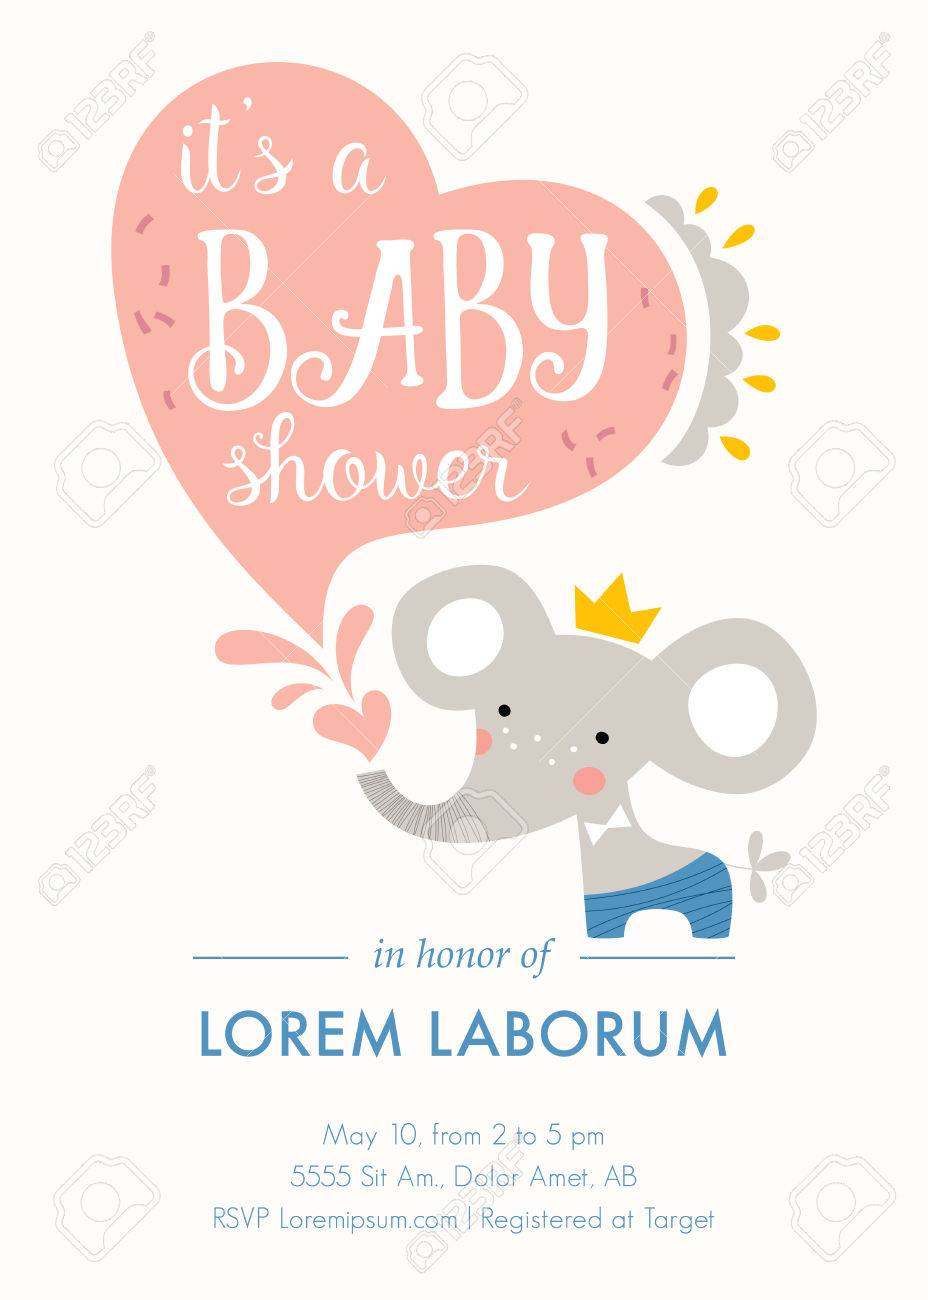 baby shower invitation template card design with baby elephant